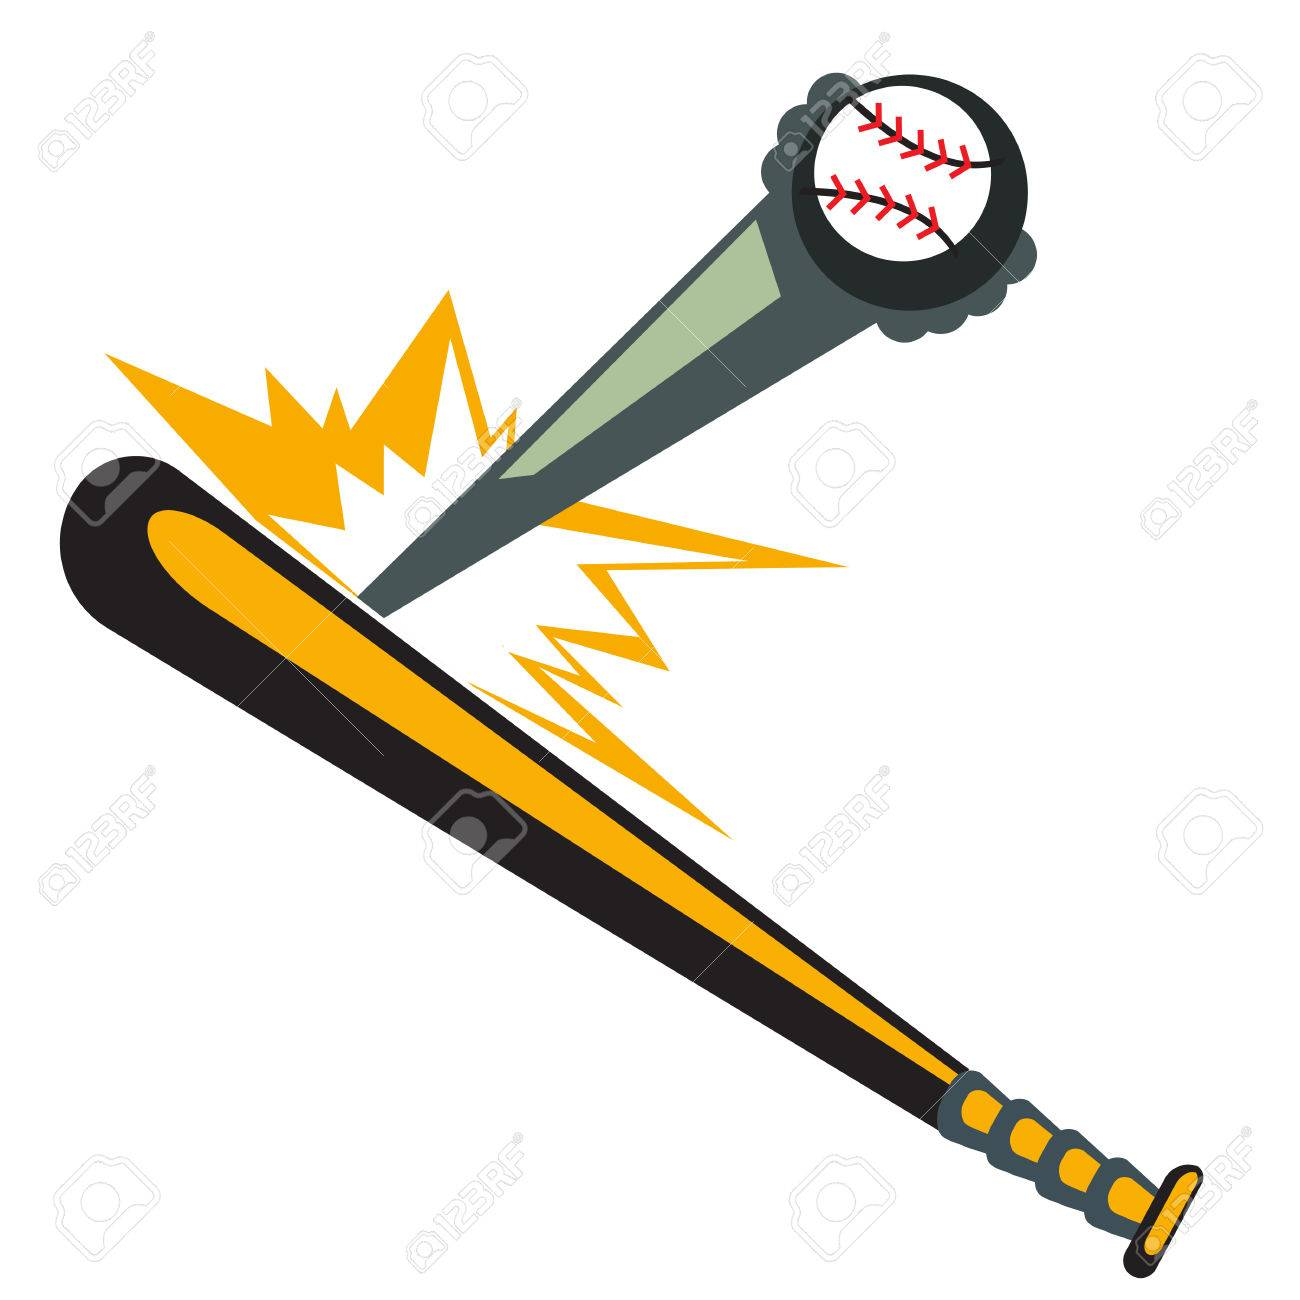 Baseball Bat Hitting The Ball Illustration Vector Royalty Free